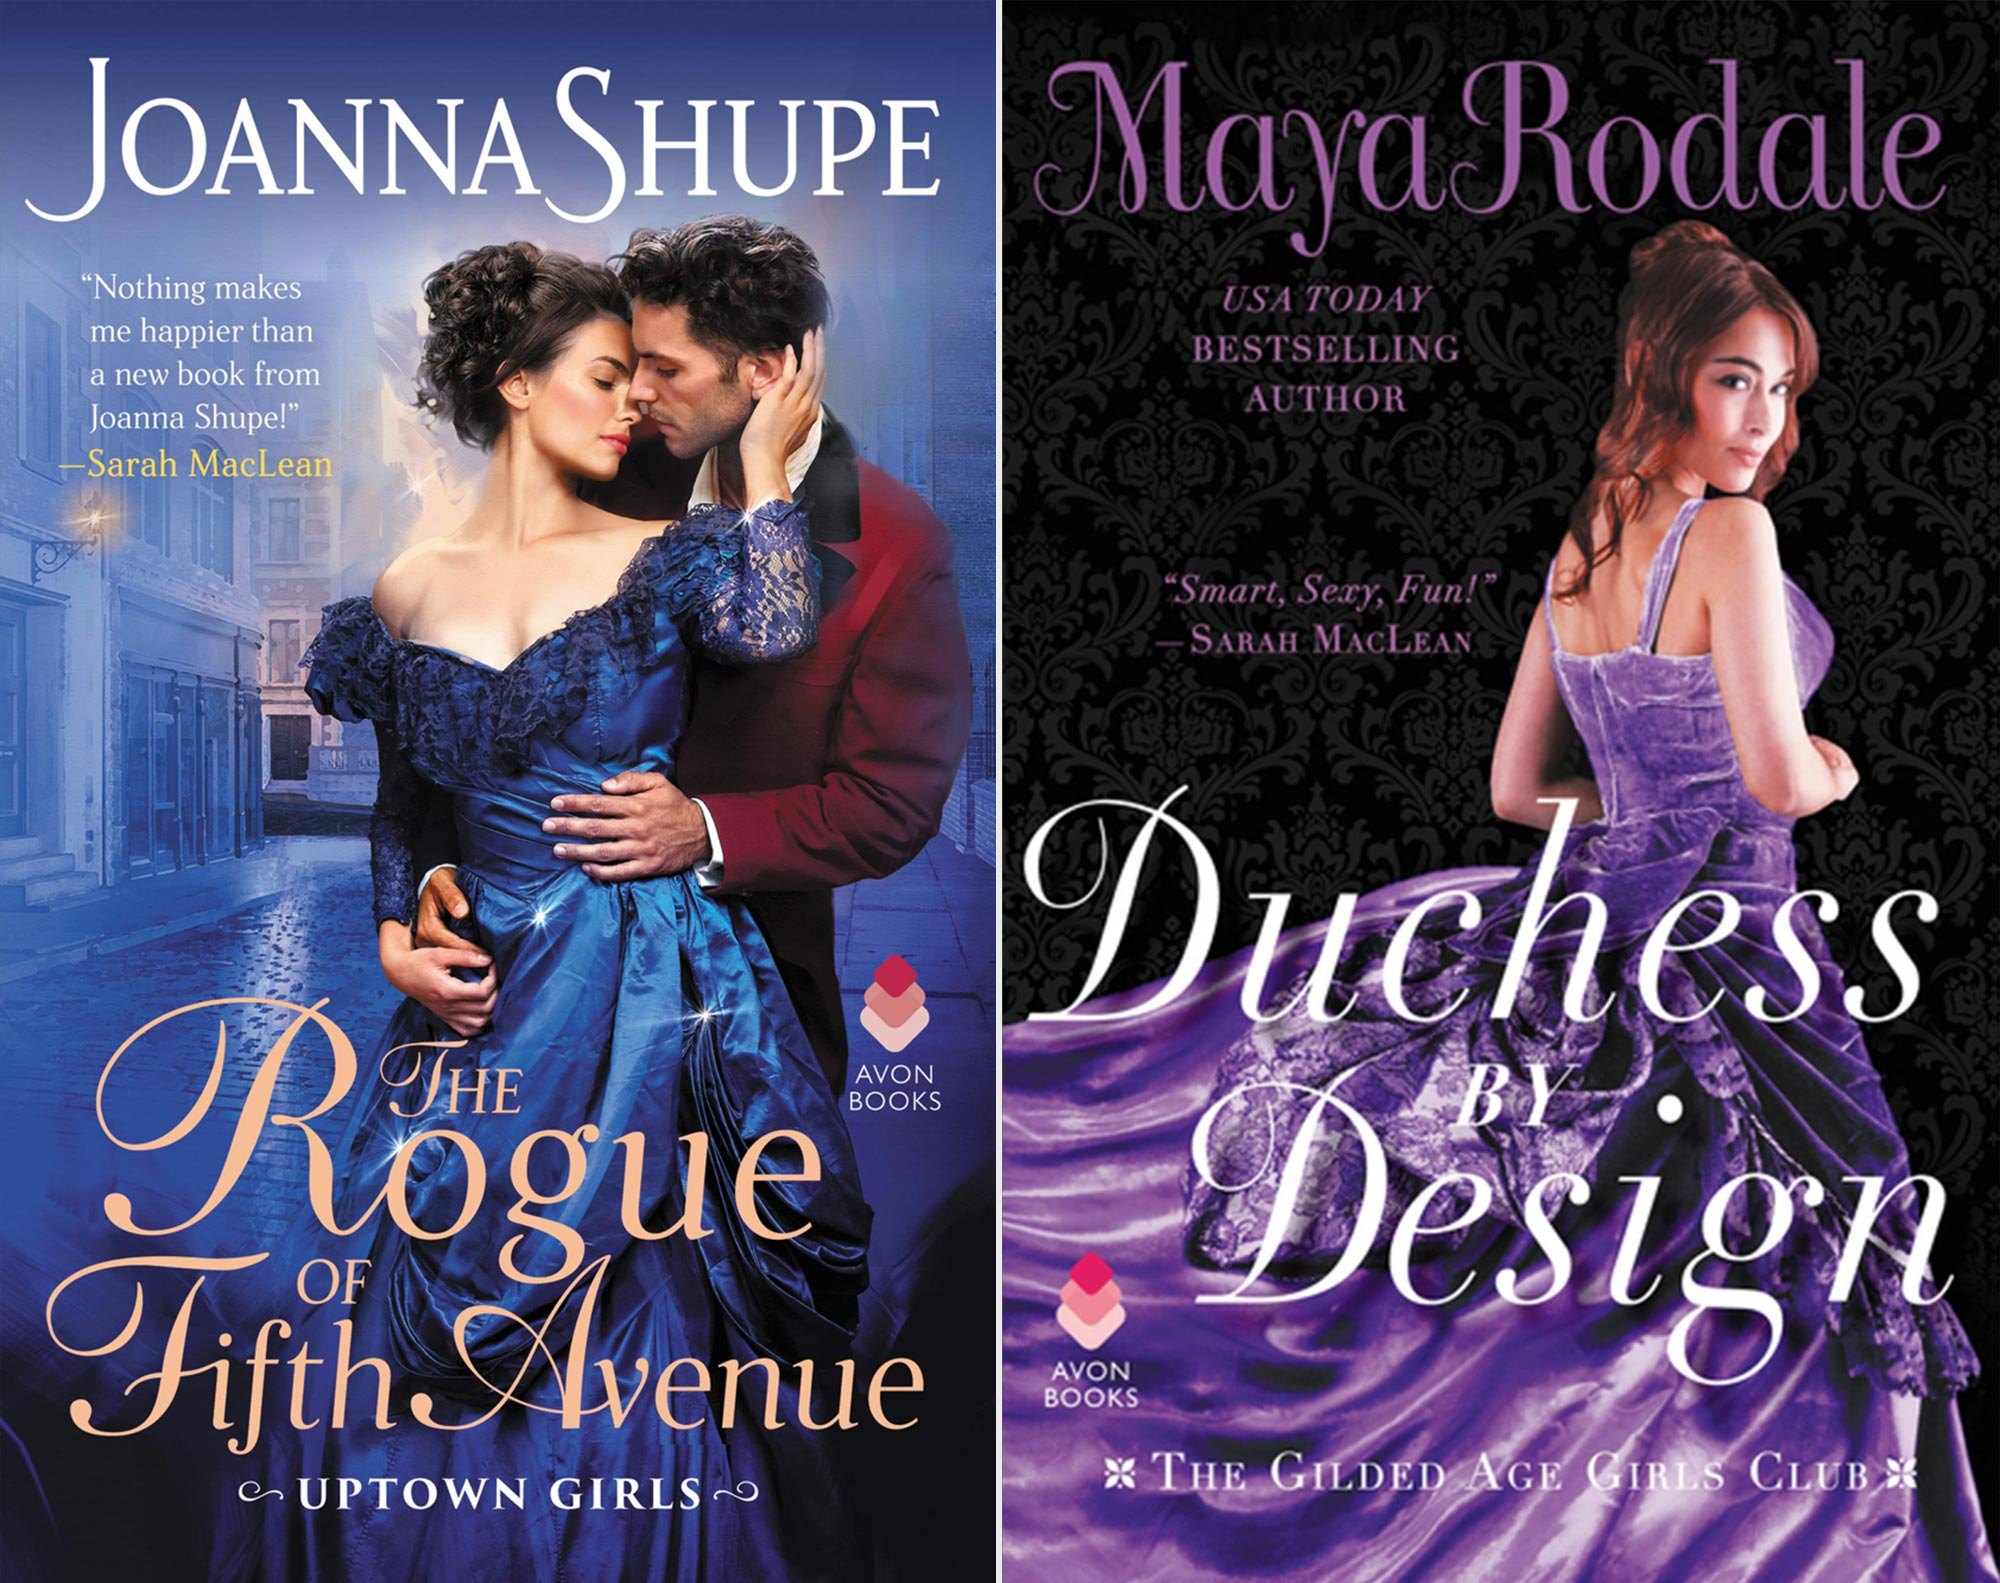 Joanna Shupe's The Rogue of Fifth Avenue and Maya Rodale's Duchess by Design